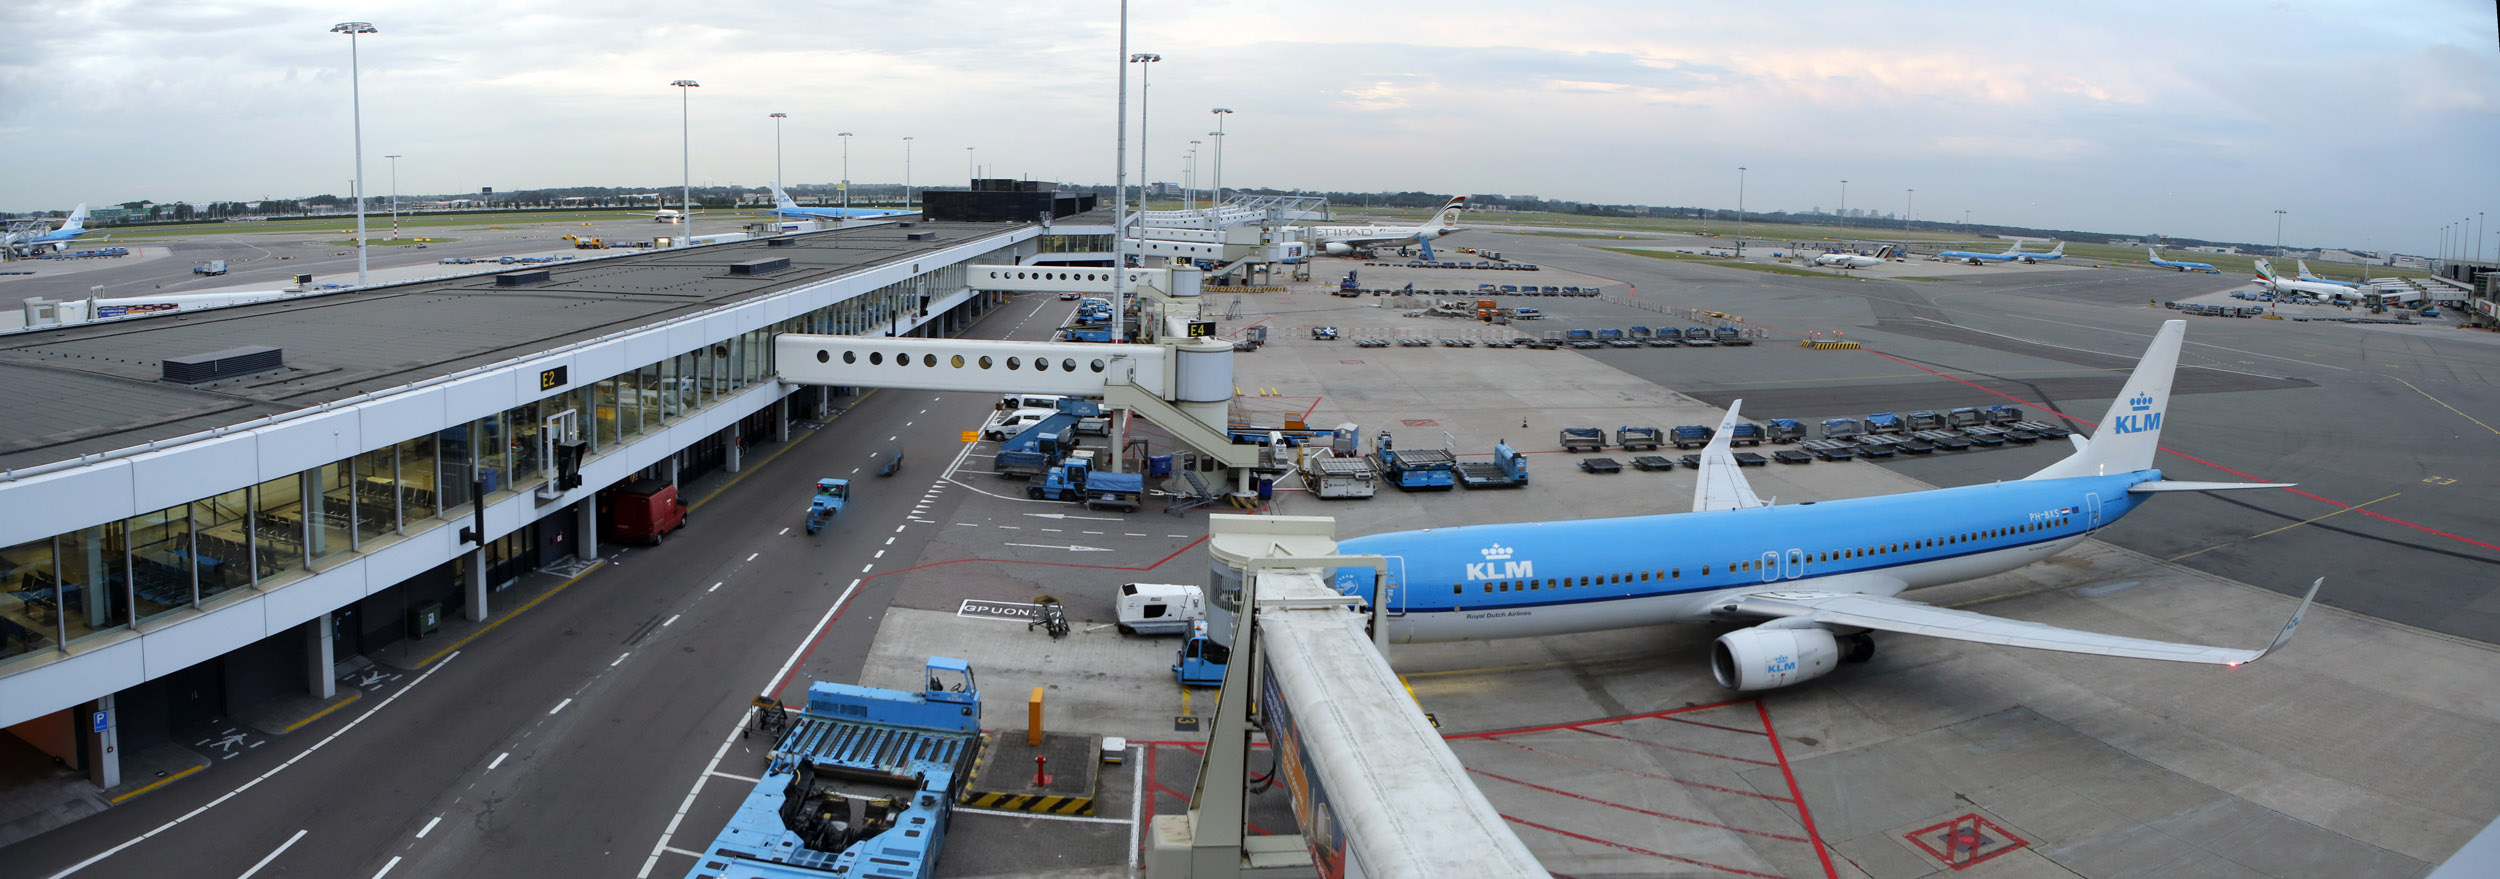 Luchthaven Airport Schiphol Amsterdam